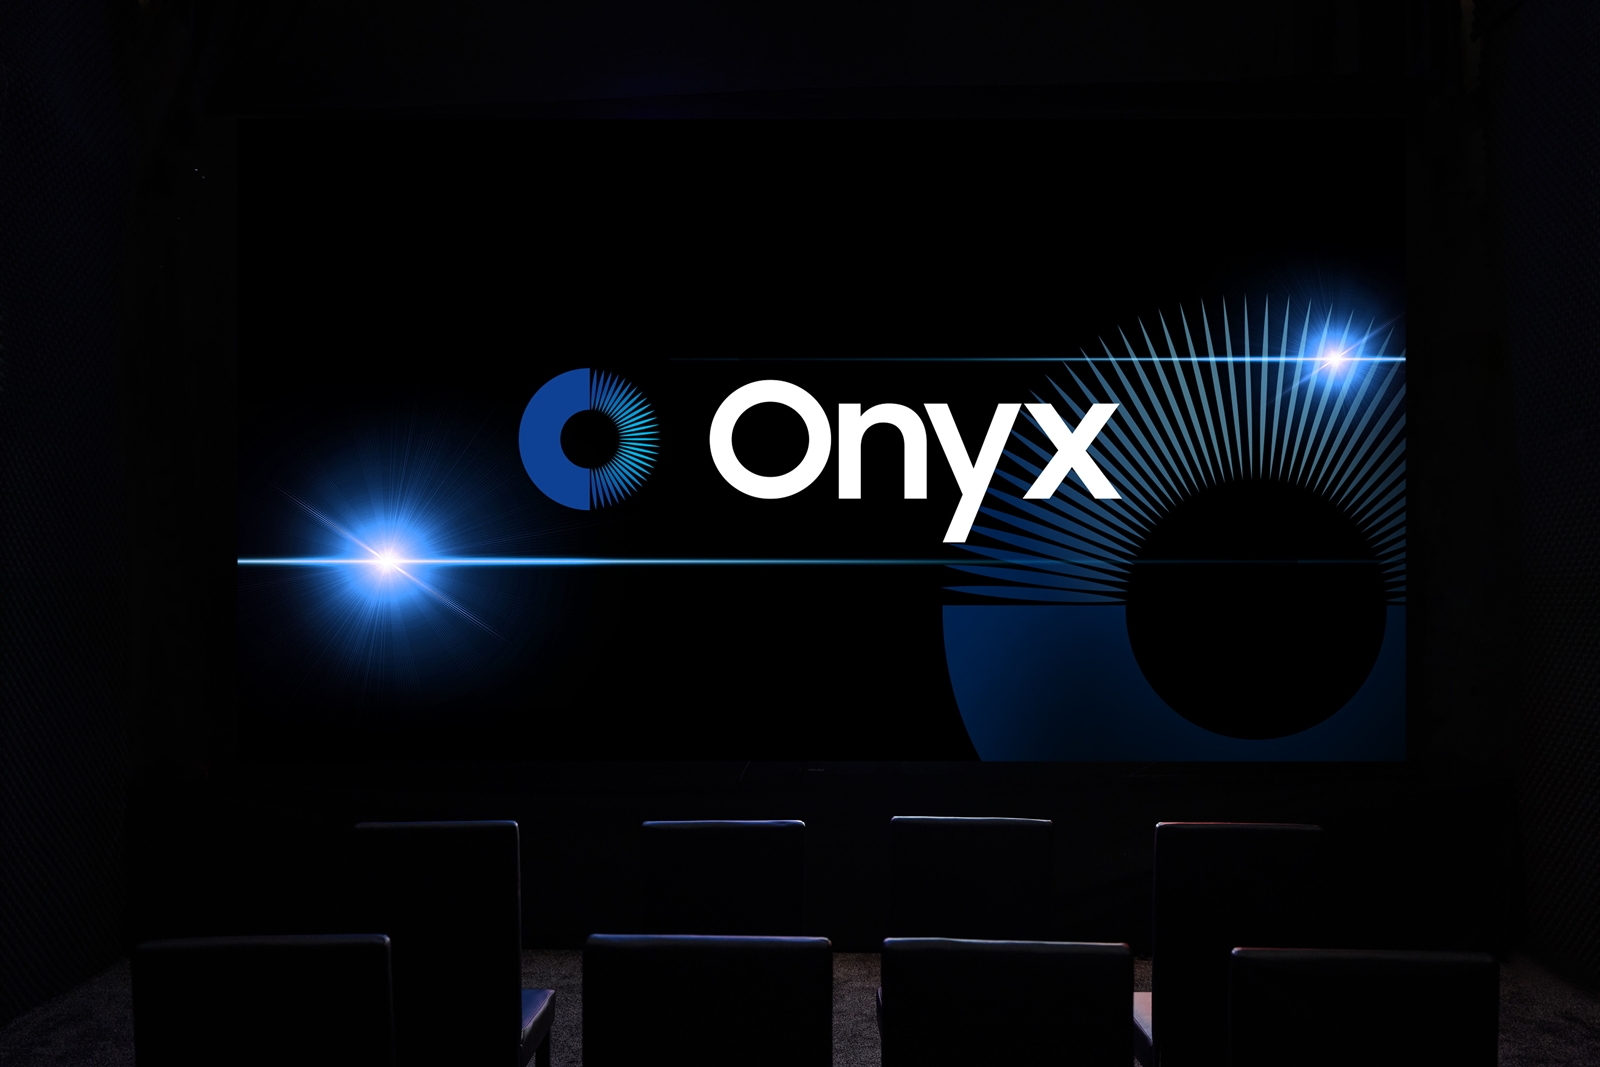 Samsung Redefines The Movie Theatre Experience With The New Onyx Cinema Led Screen Samsung